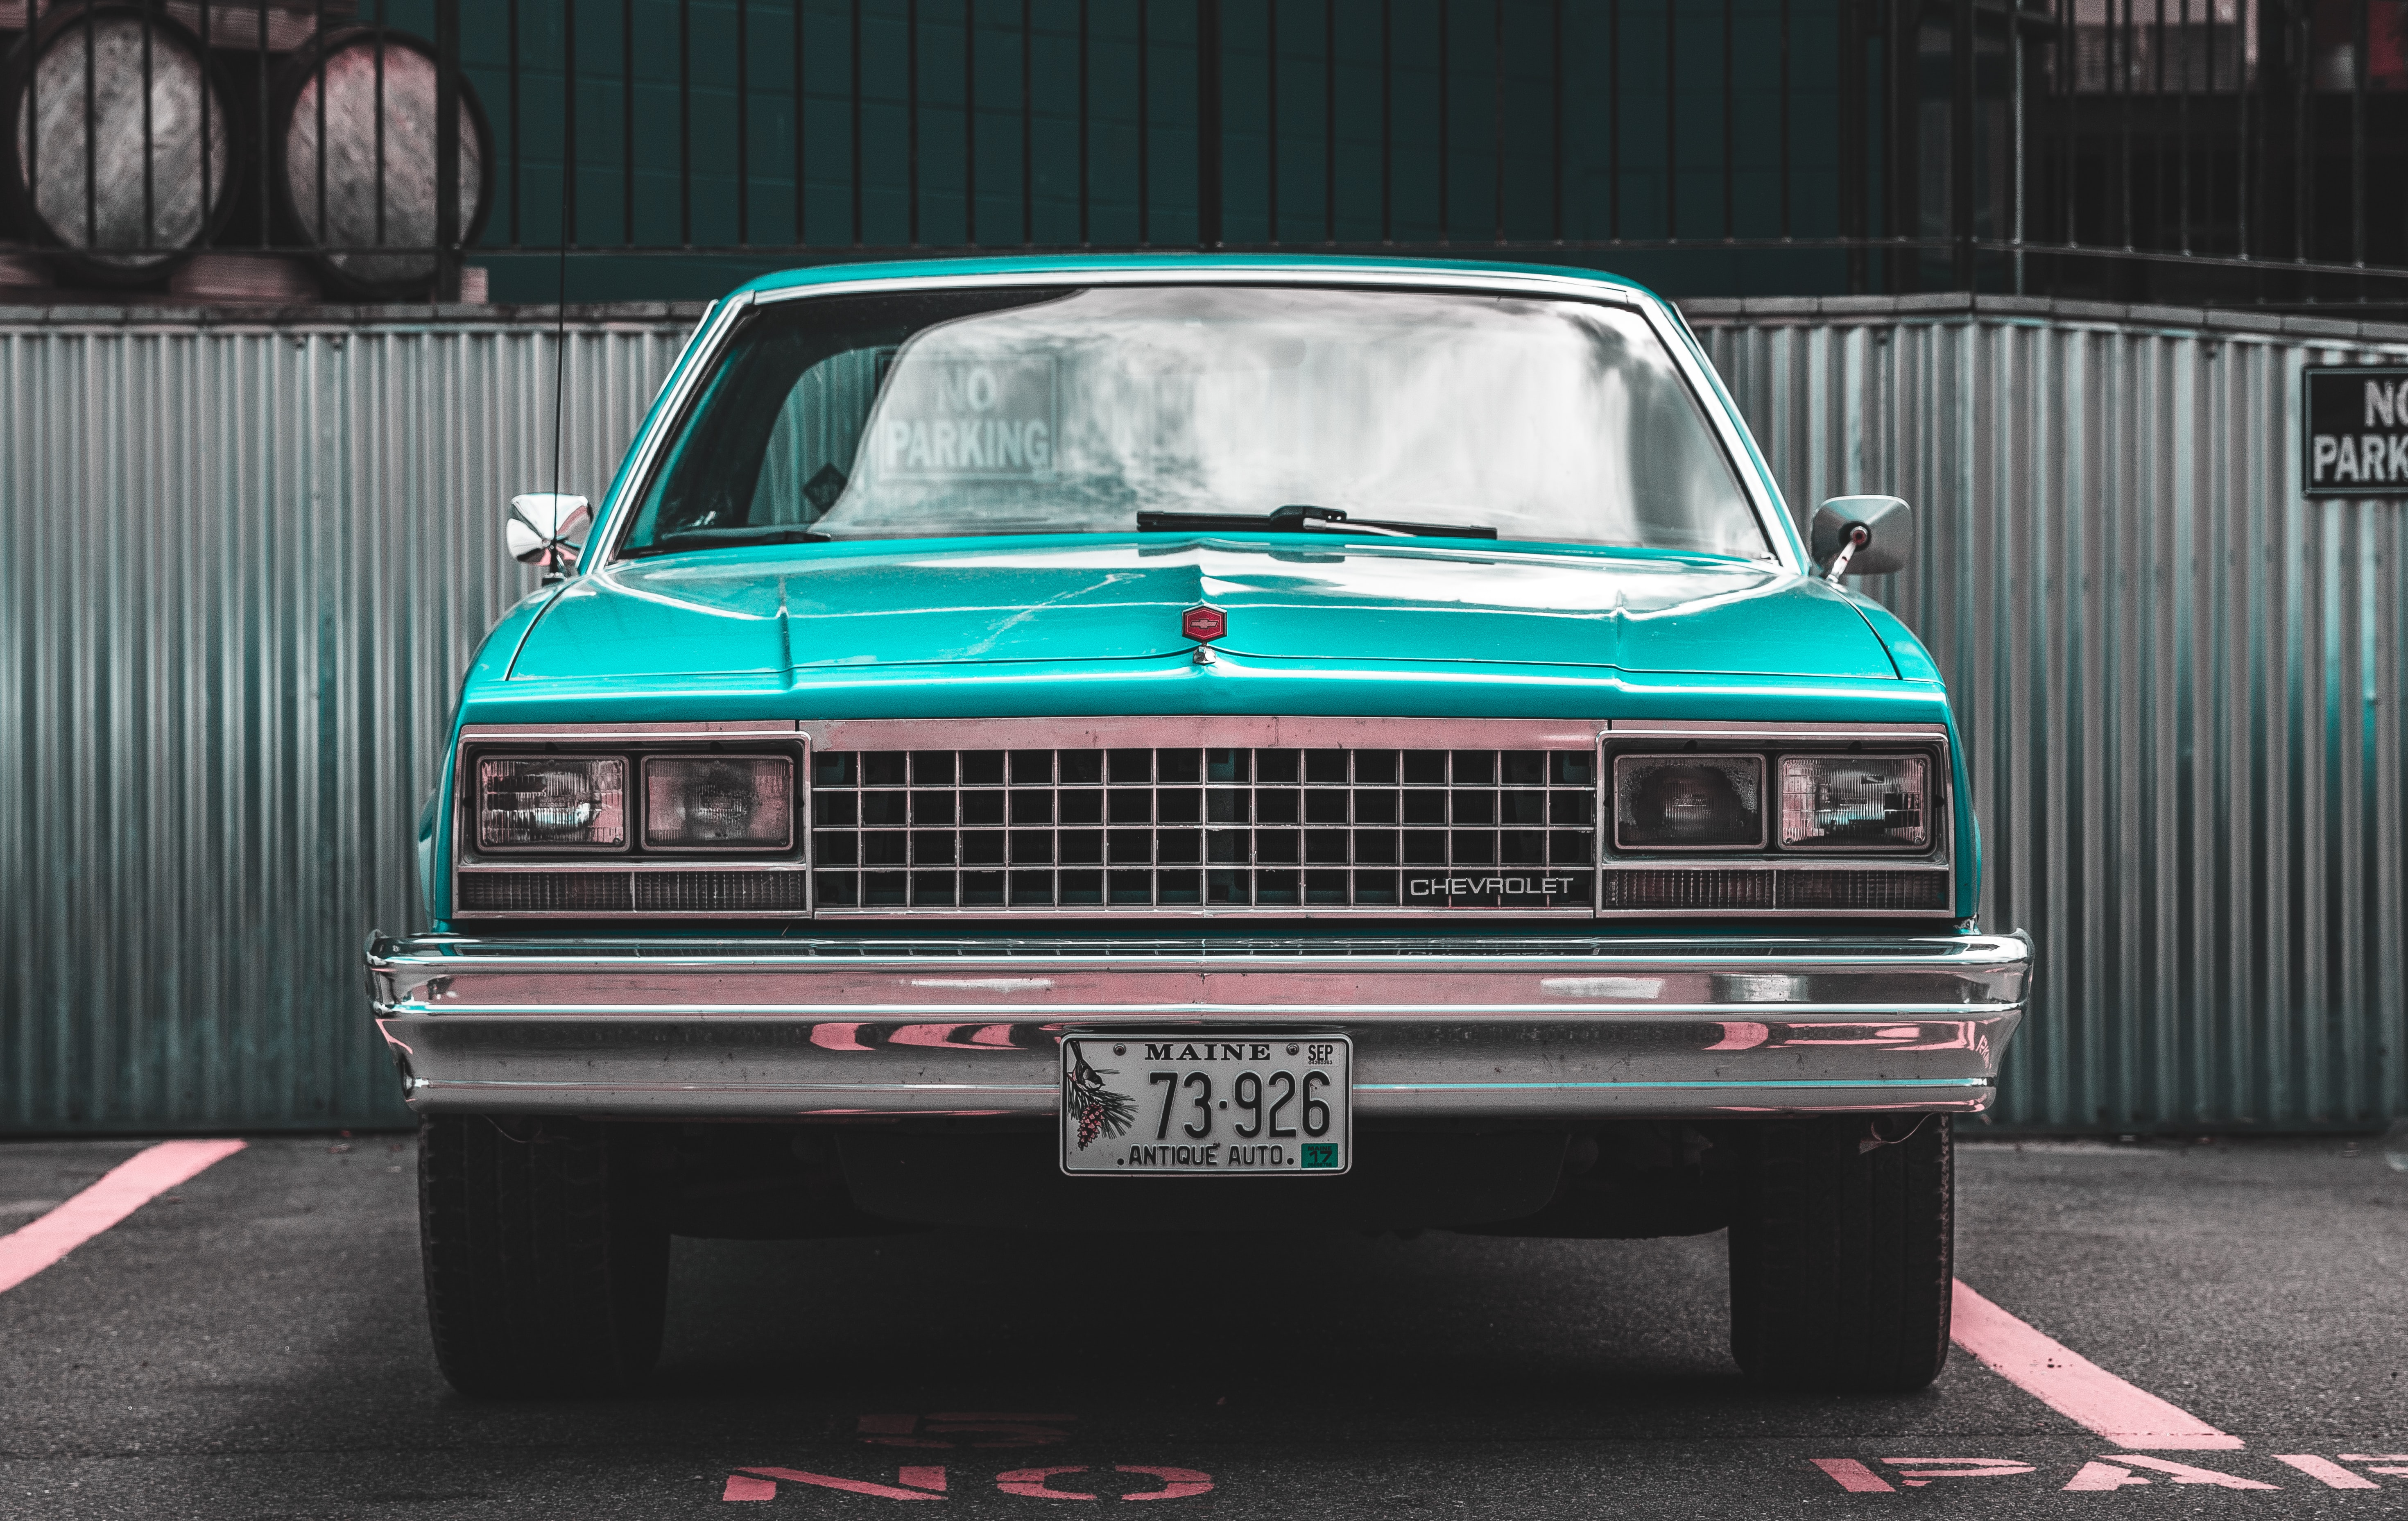 An aquamarine-colored vintage car in a parking lot.